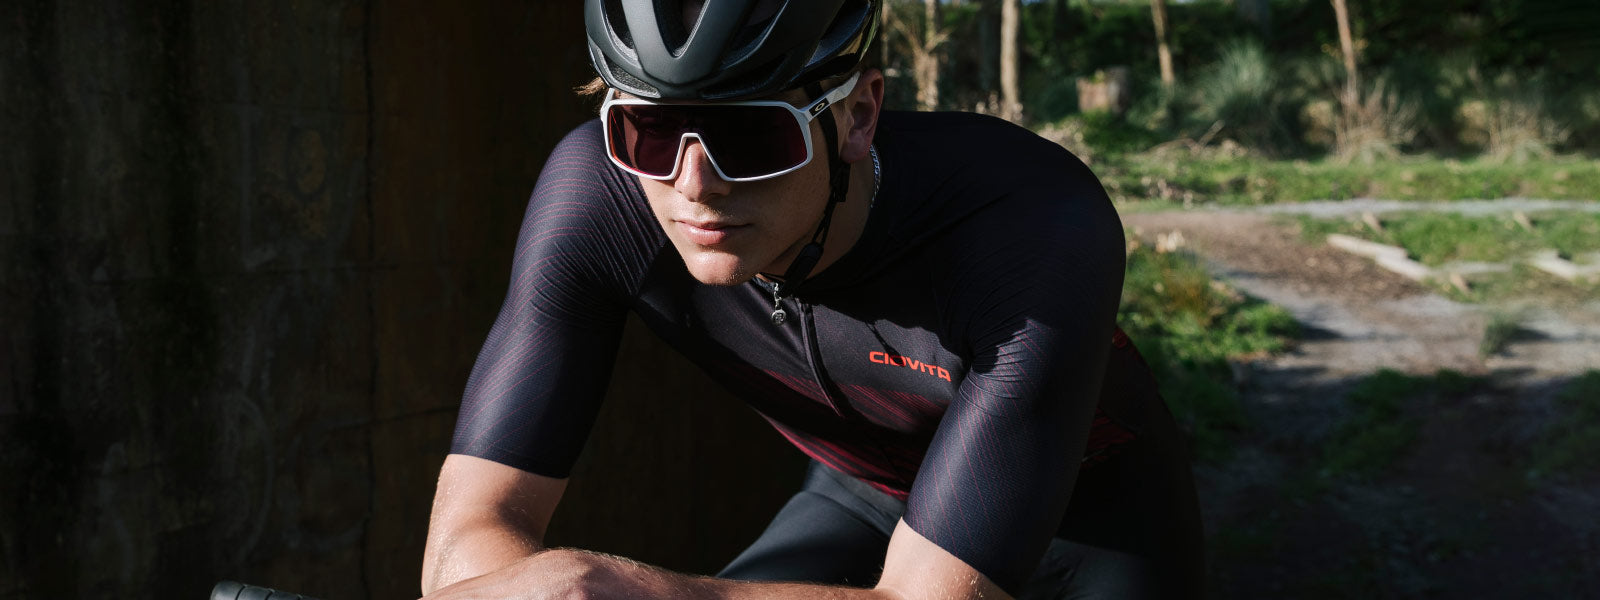 Men's Race Fit Cycling Jerseys